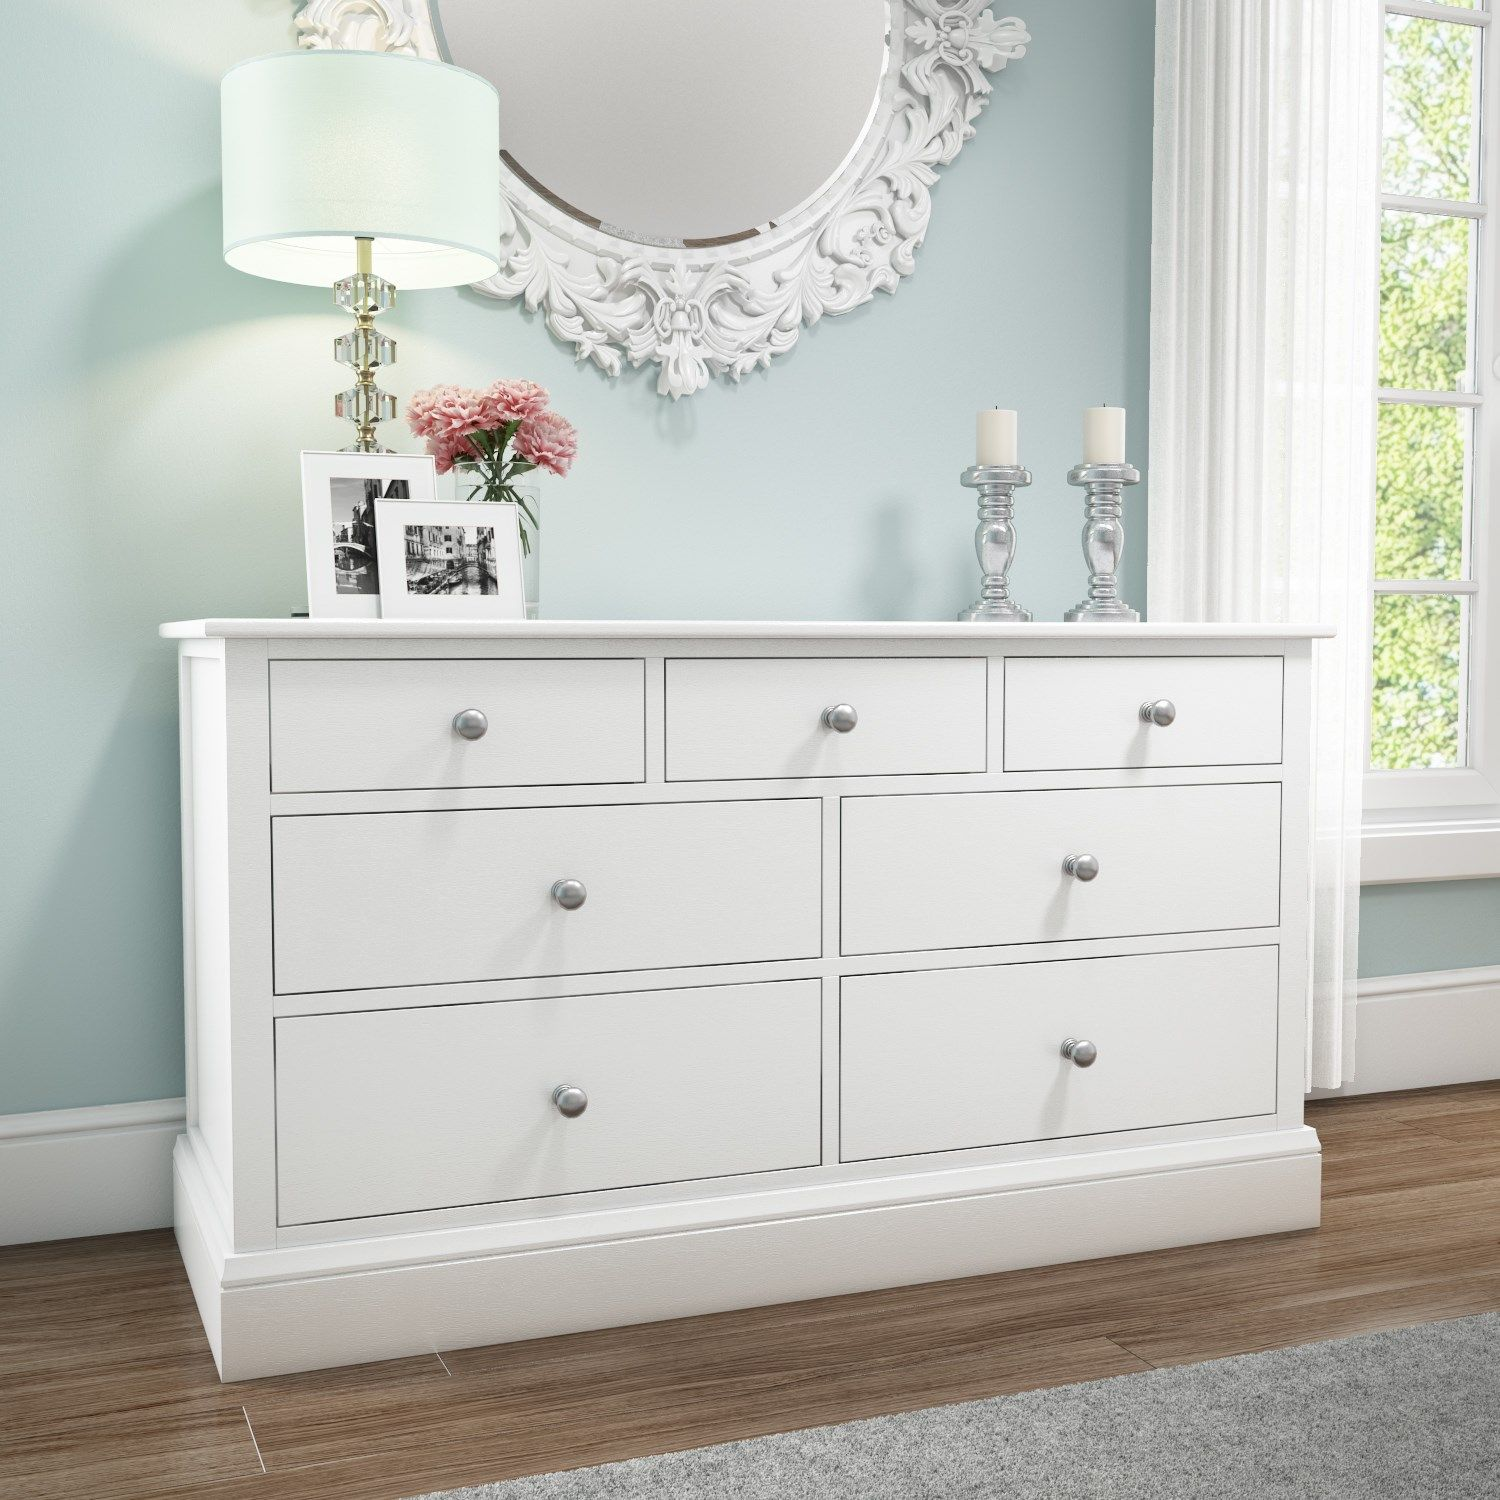 White Chest Of Drawers Home Interior Design Ideas White Chest Of Drawers Bedroom Chest Of Drawers Wide Chest Of Drawers White wooden chest of drawers